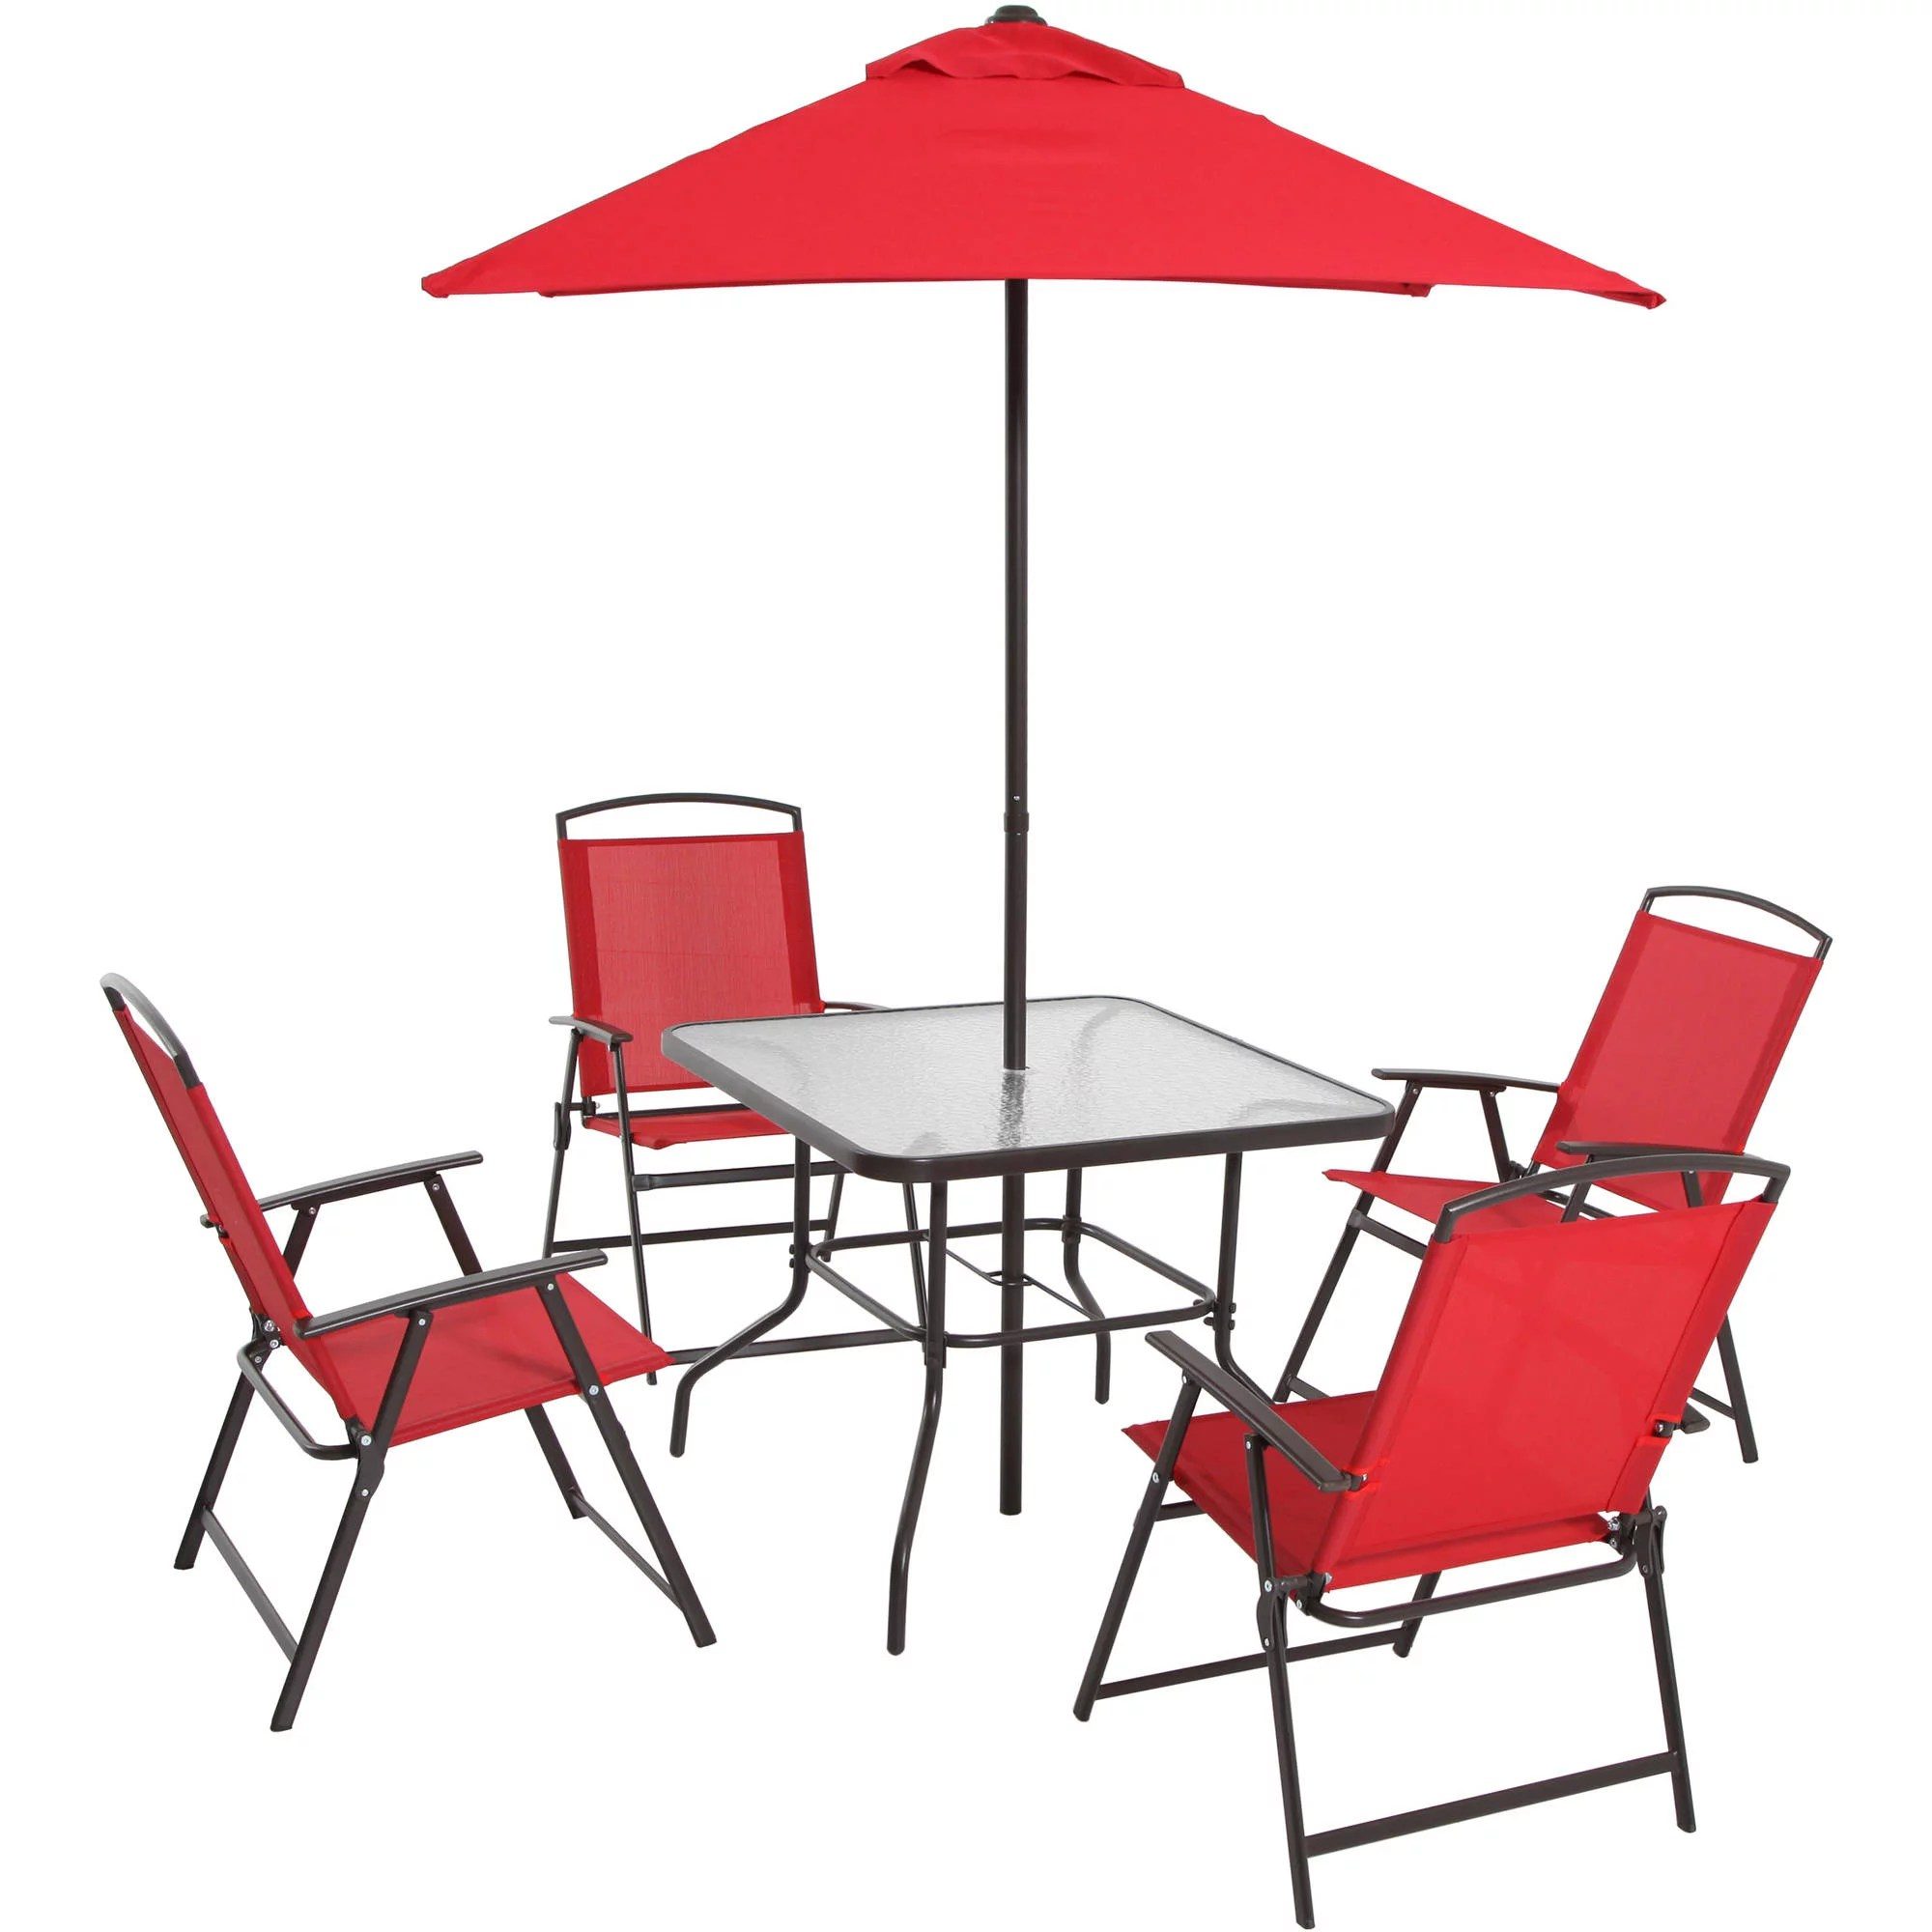 Patio Furniture Table And Chairs Mainstays Albany Lane 6 Piece Folding Dining Set Multiple Colors